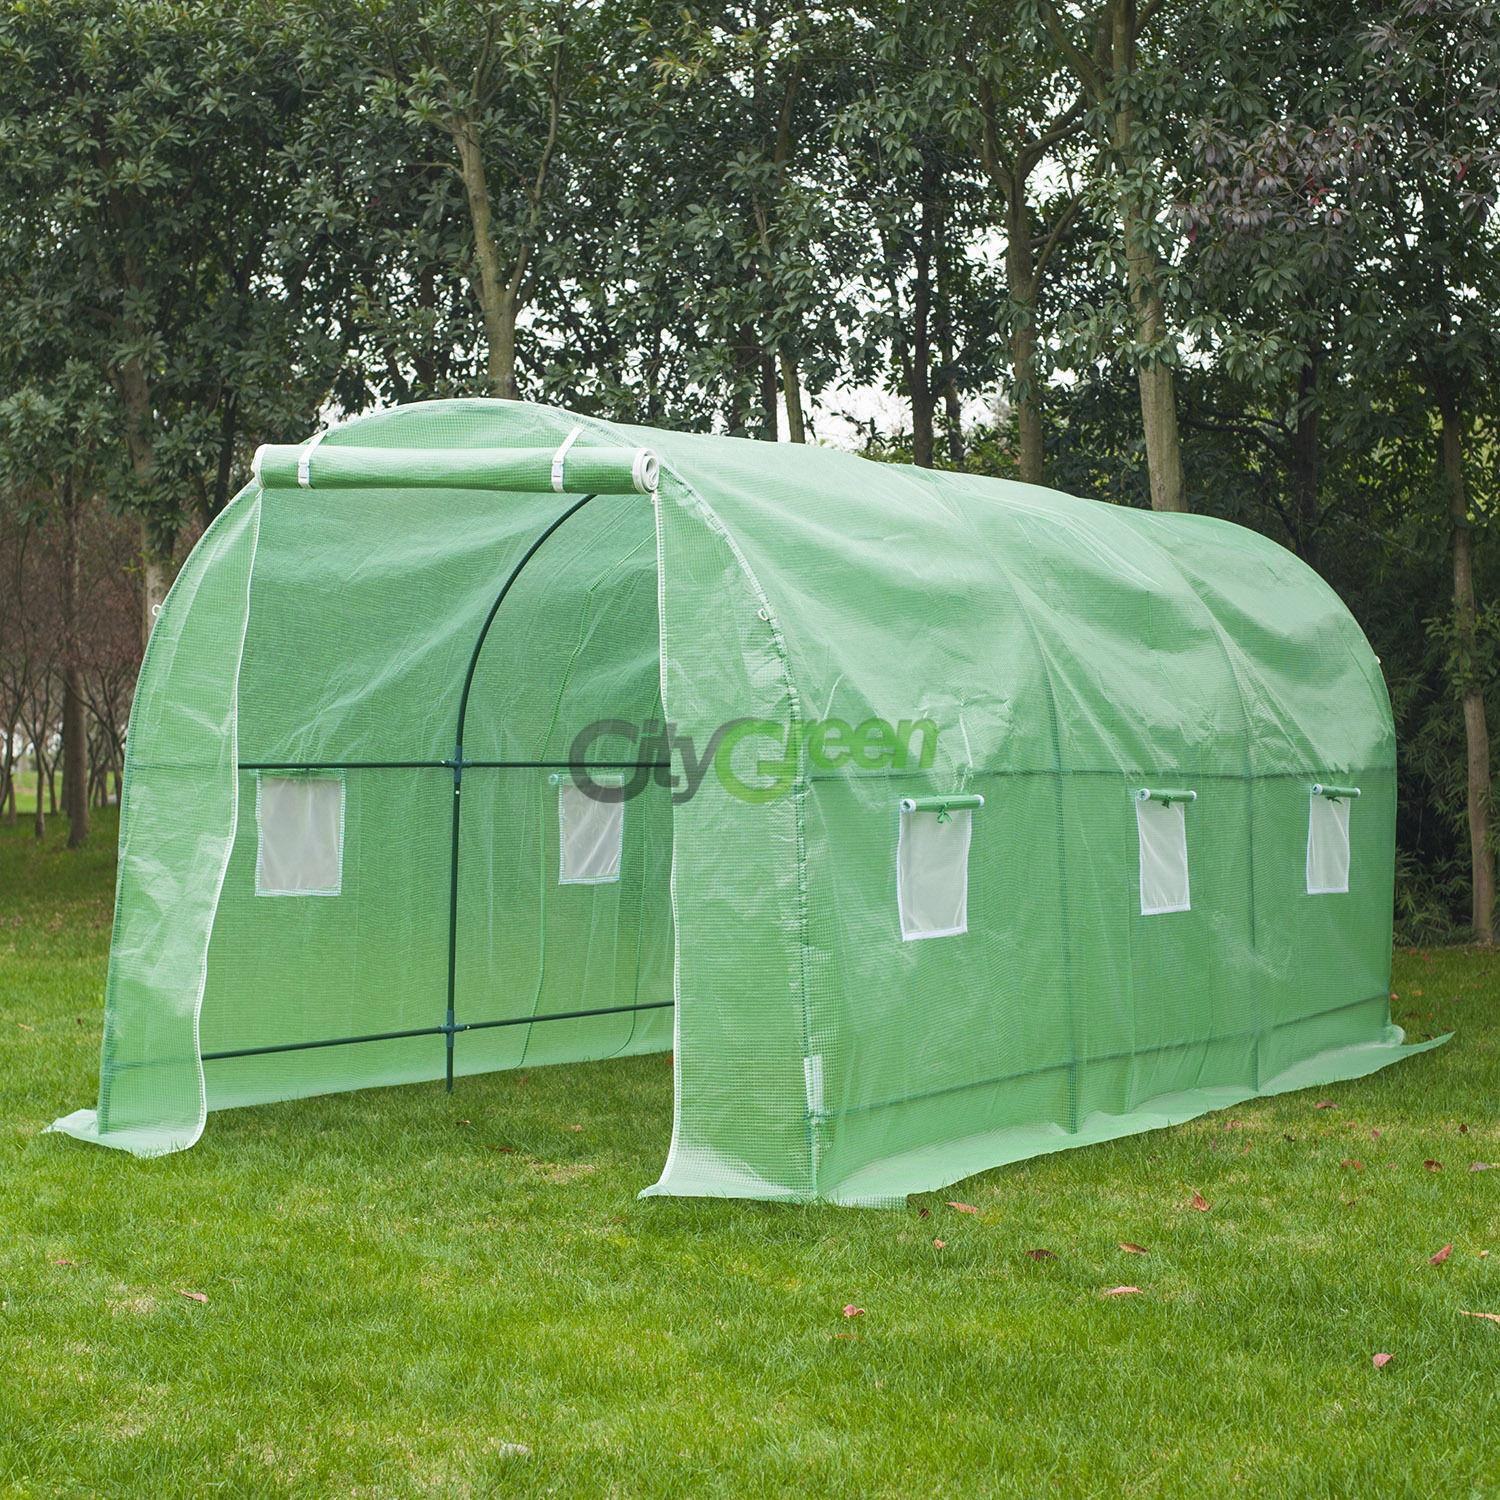 Portable Hot House : Large x walk in portable greenhouse hot green